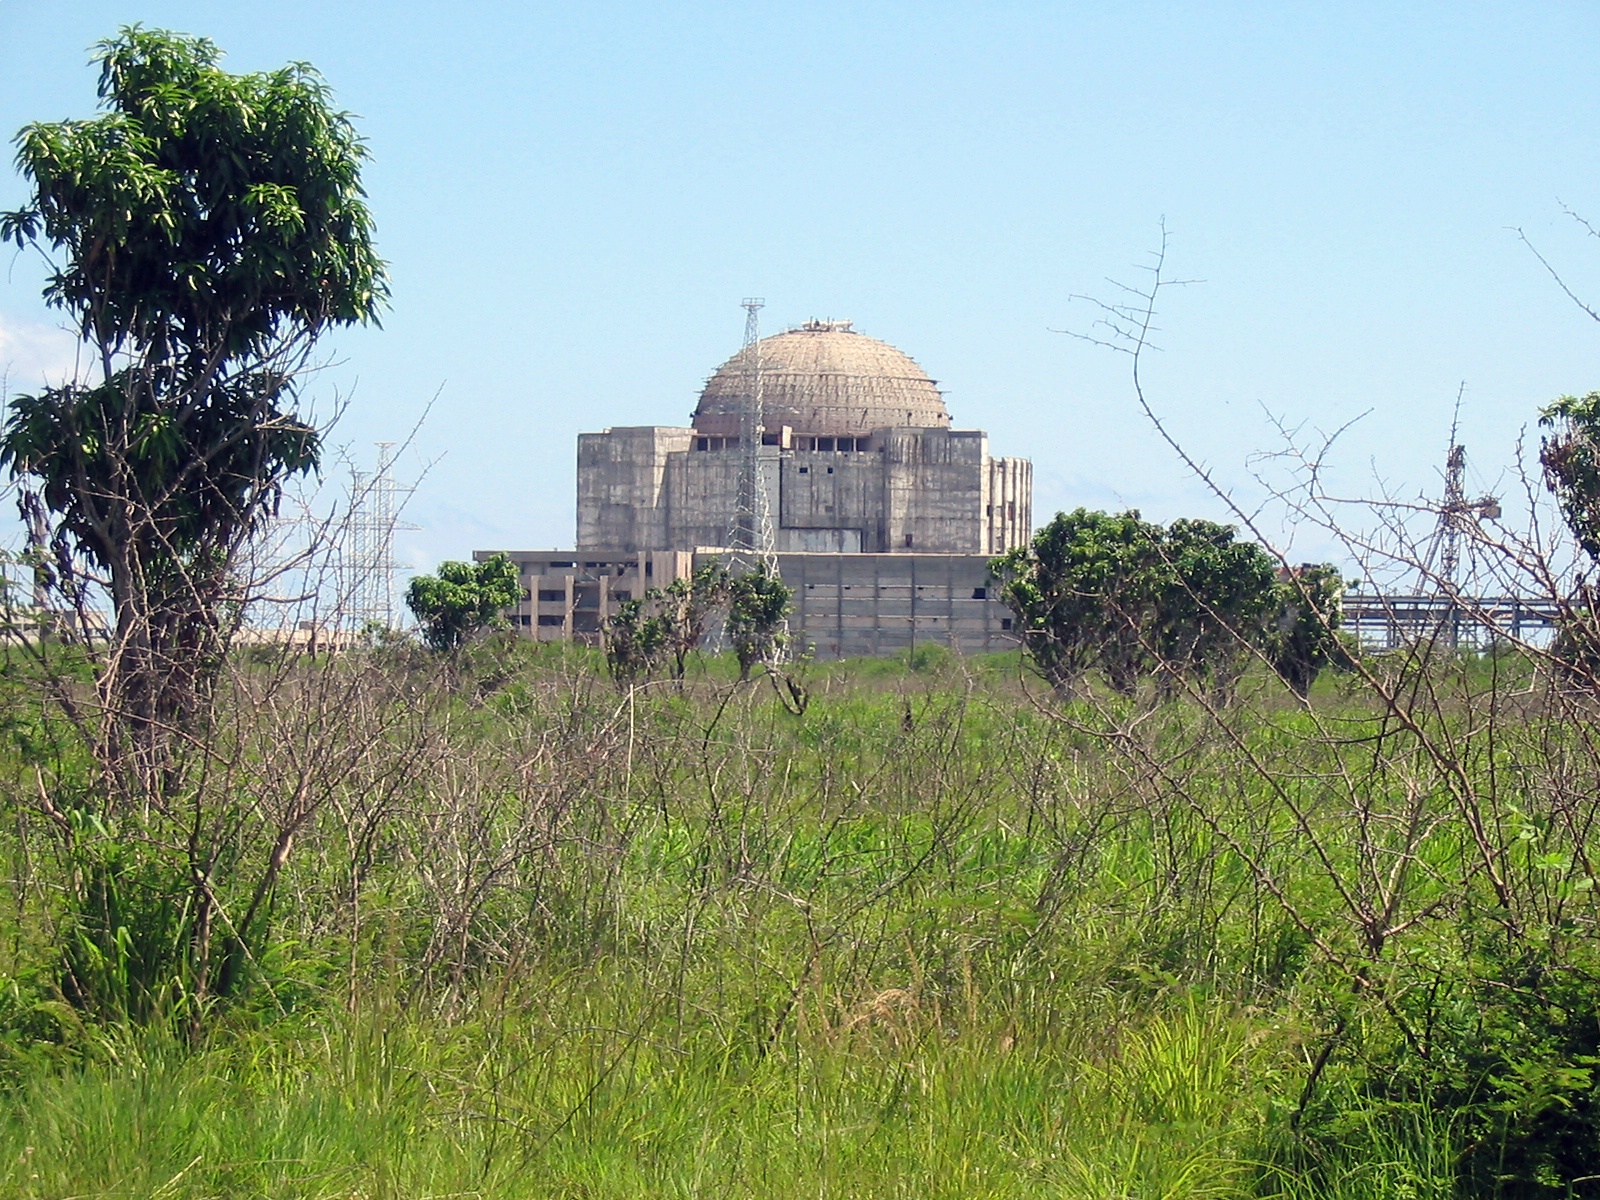 http://upload.wikimedia.org/wikipedia/commons/a/a0/Juragua_Nuclear_Power_Plant.jpg